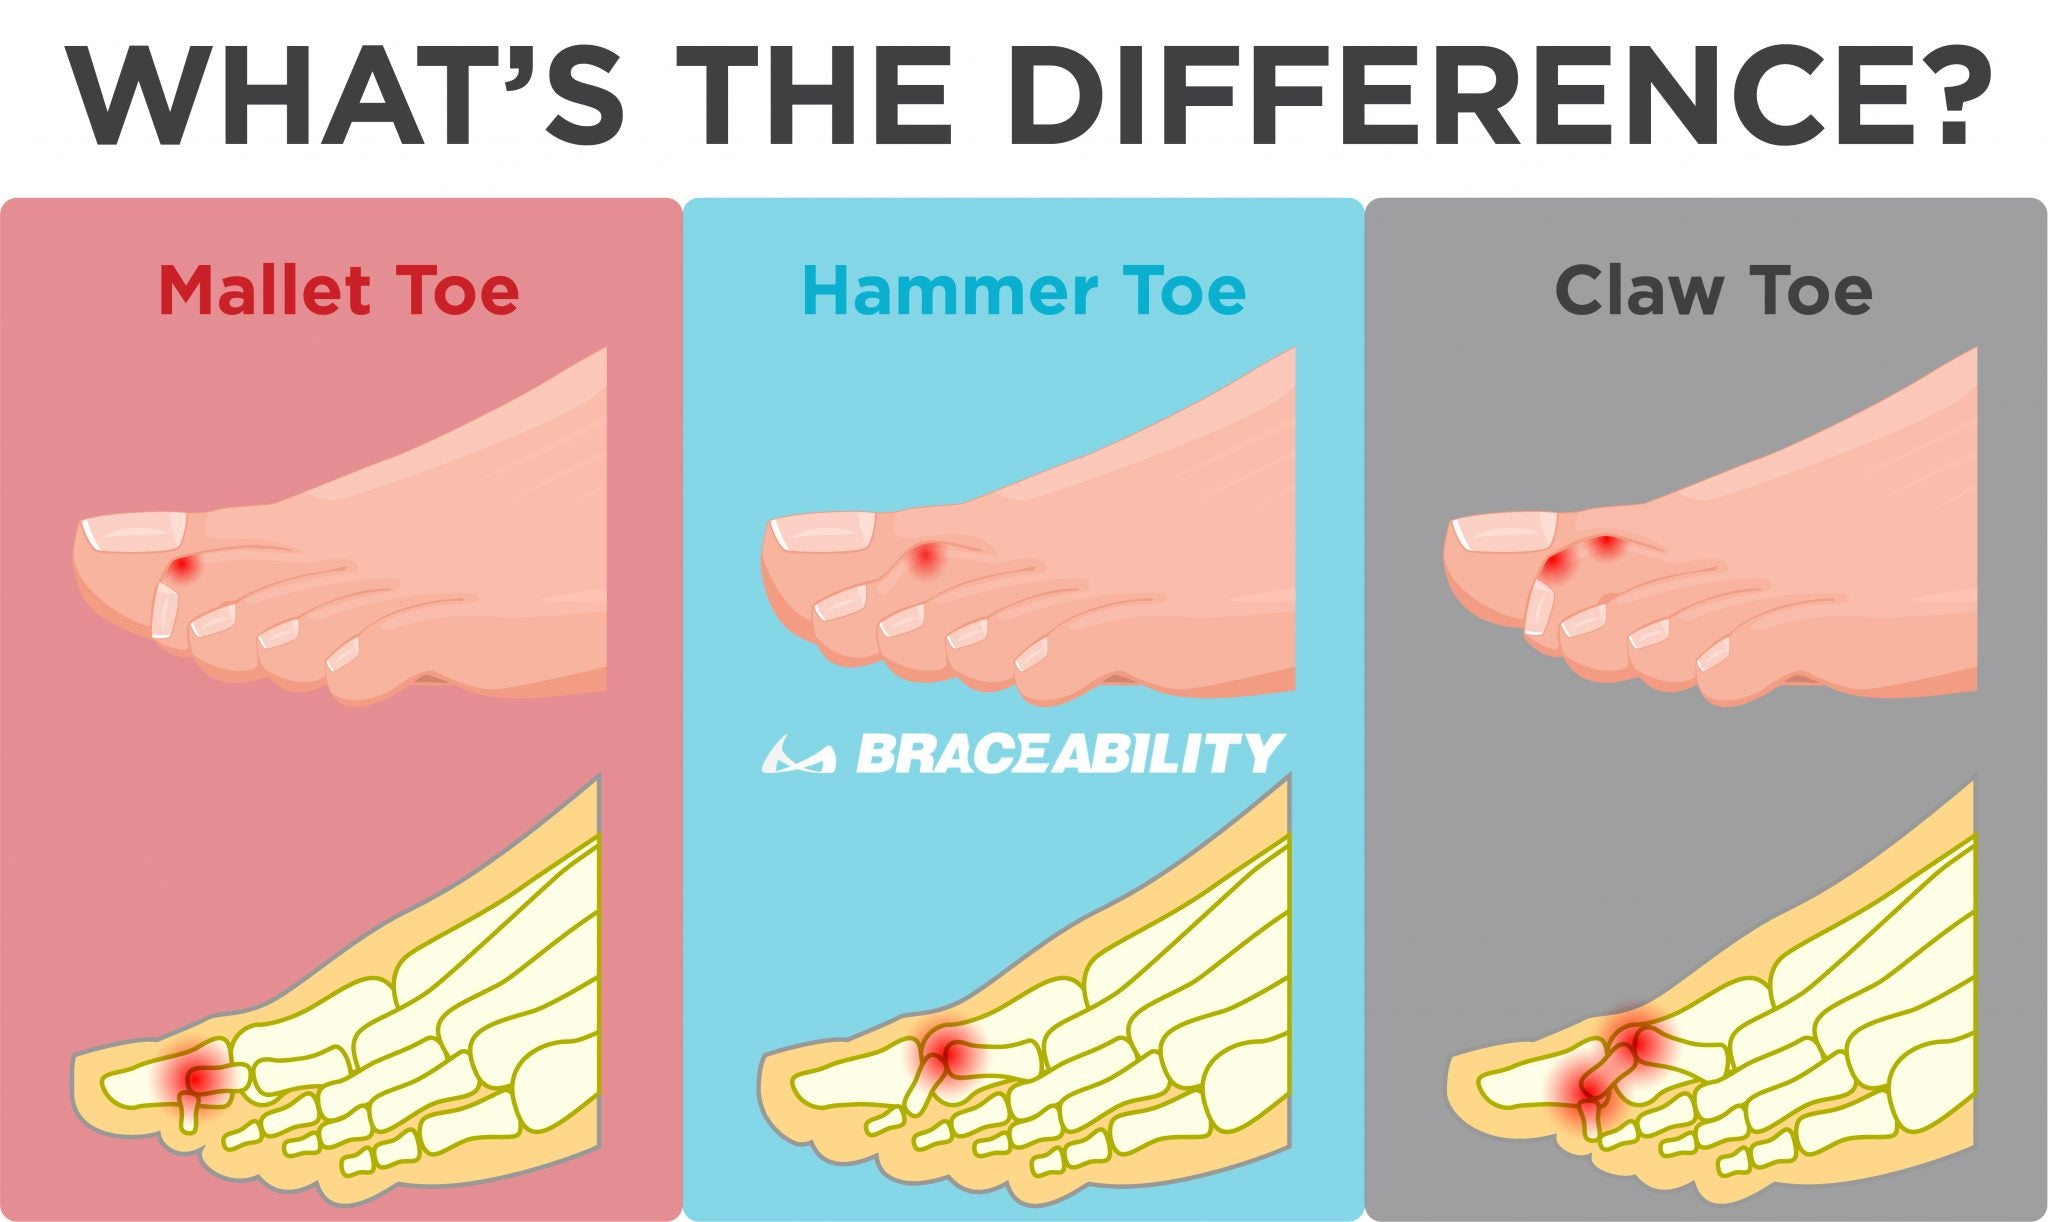 the difference between mallet toe, hammer toe and claw toe is what toe joint is injured